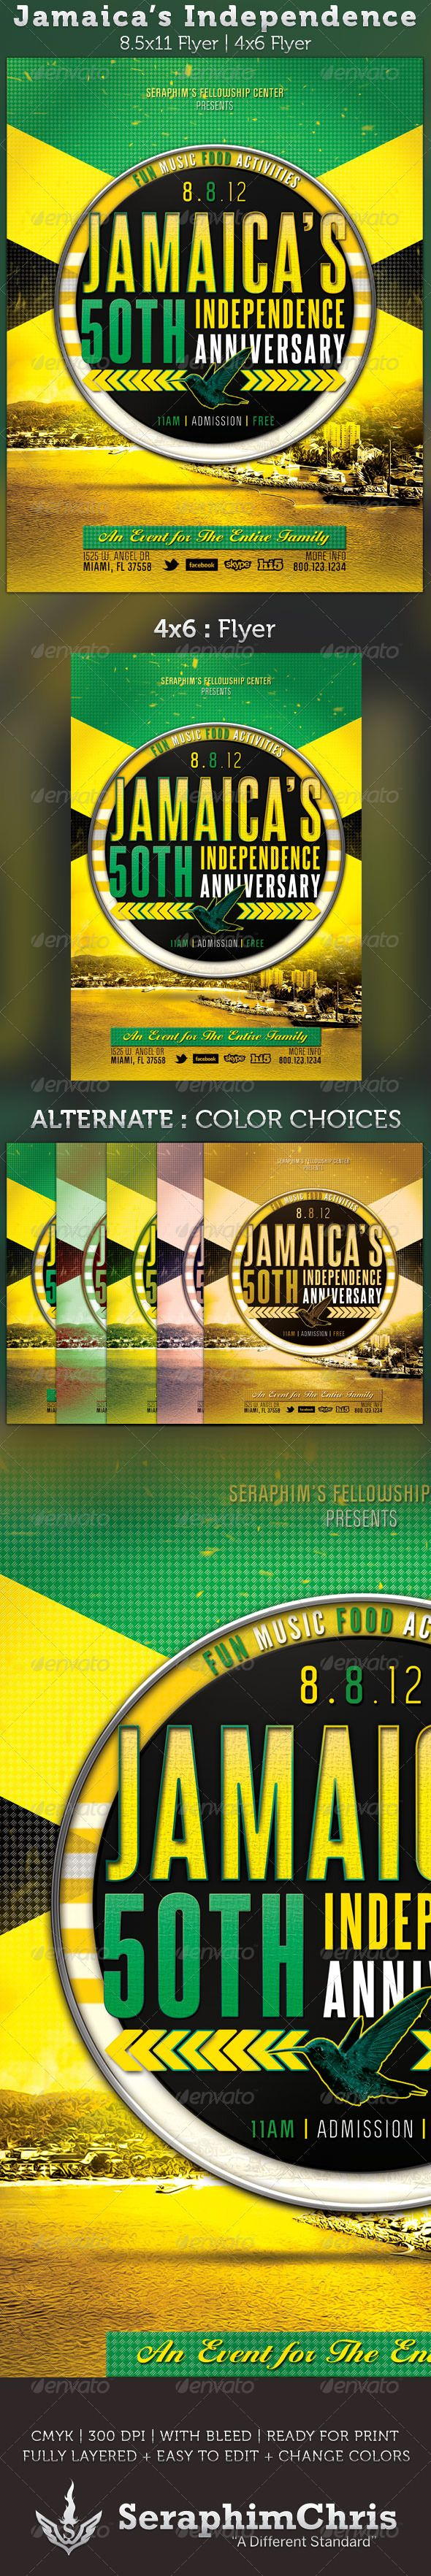 Jamaica's Independence Flyer Template - $6.00